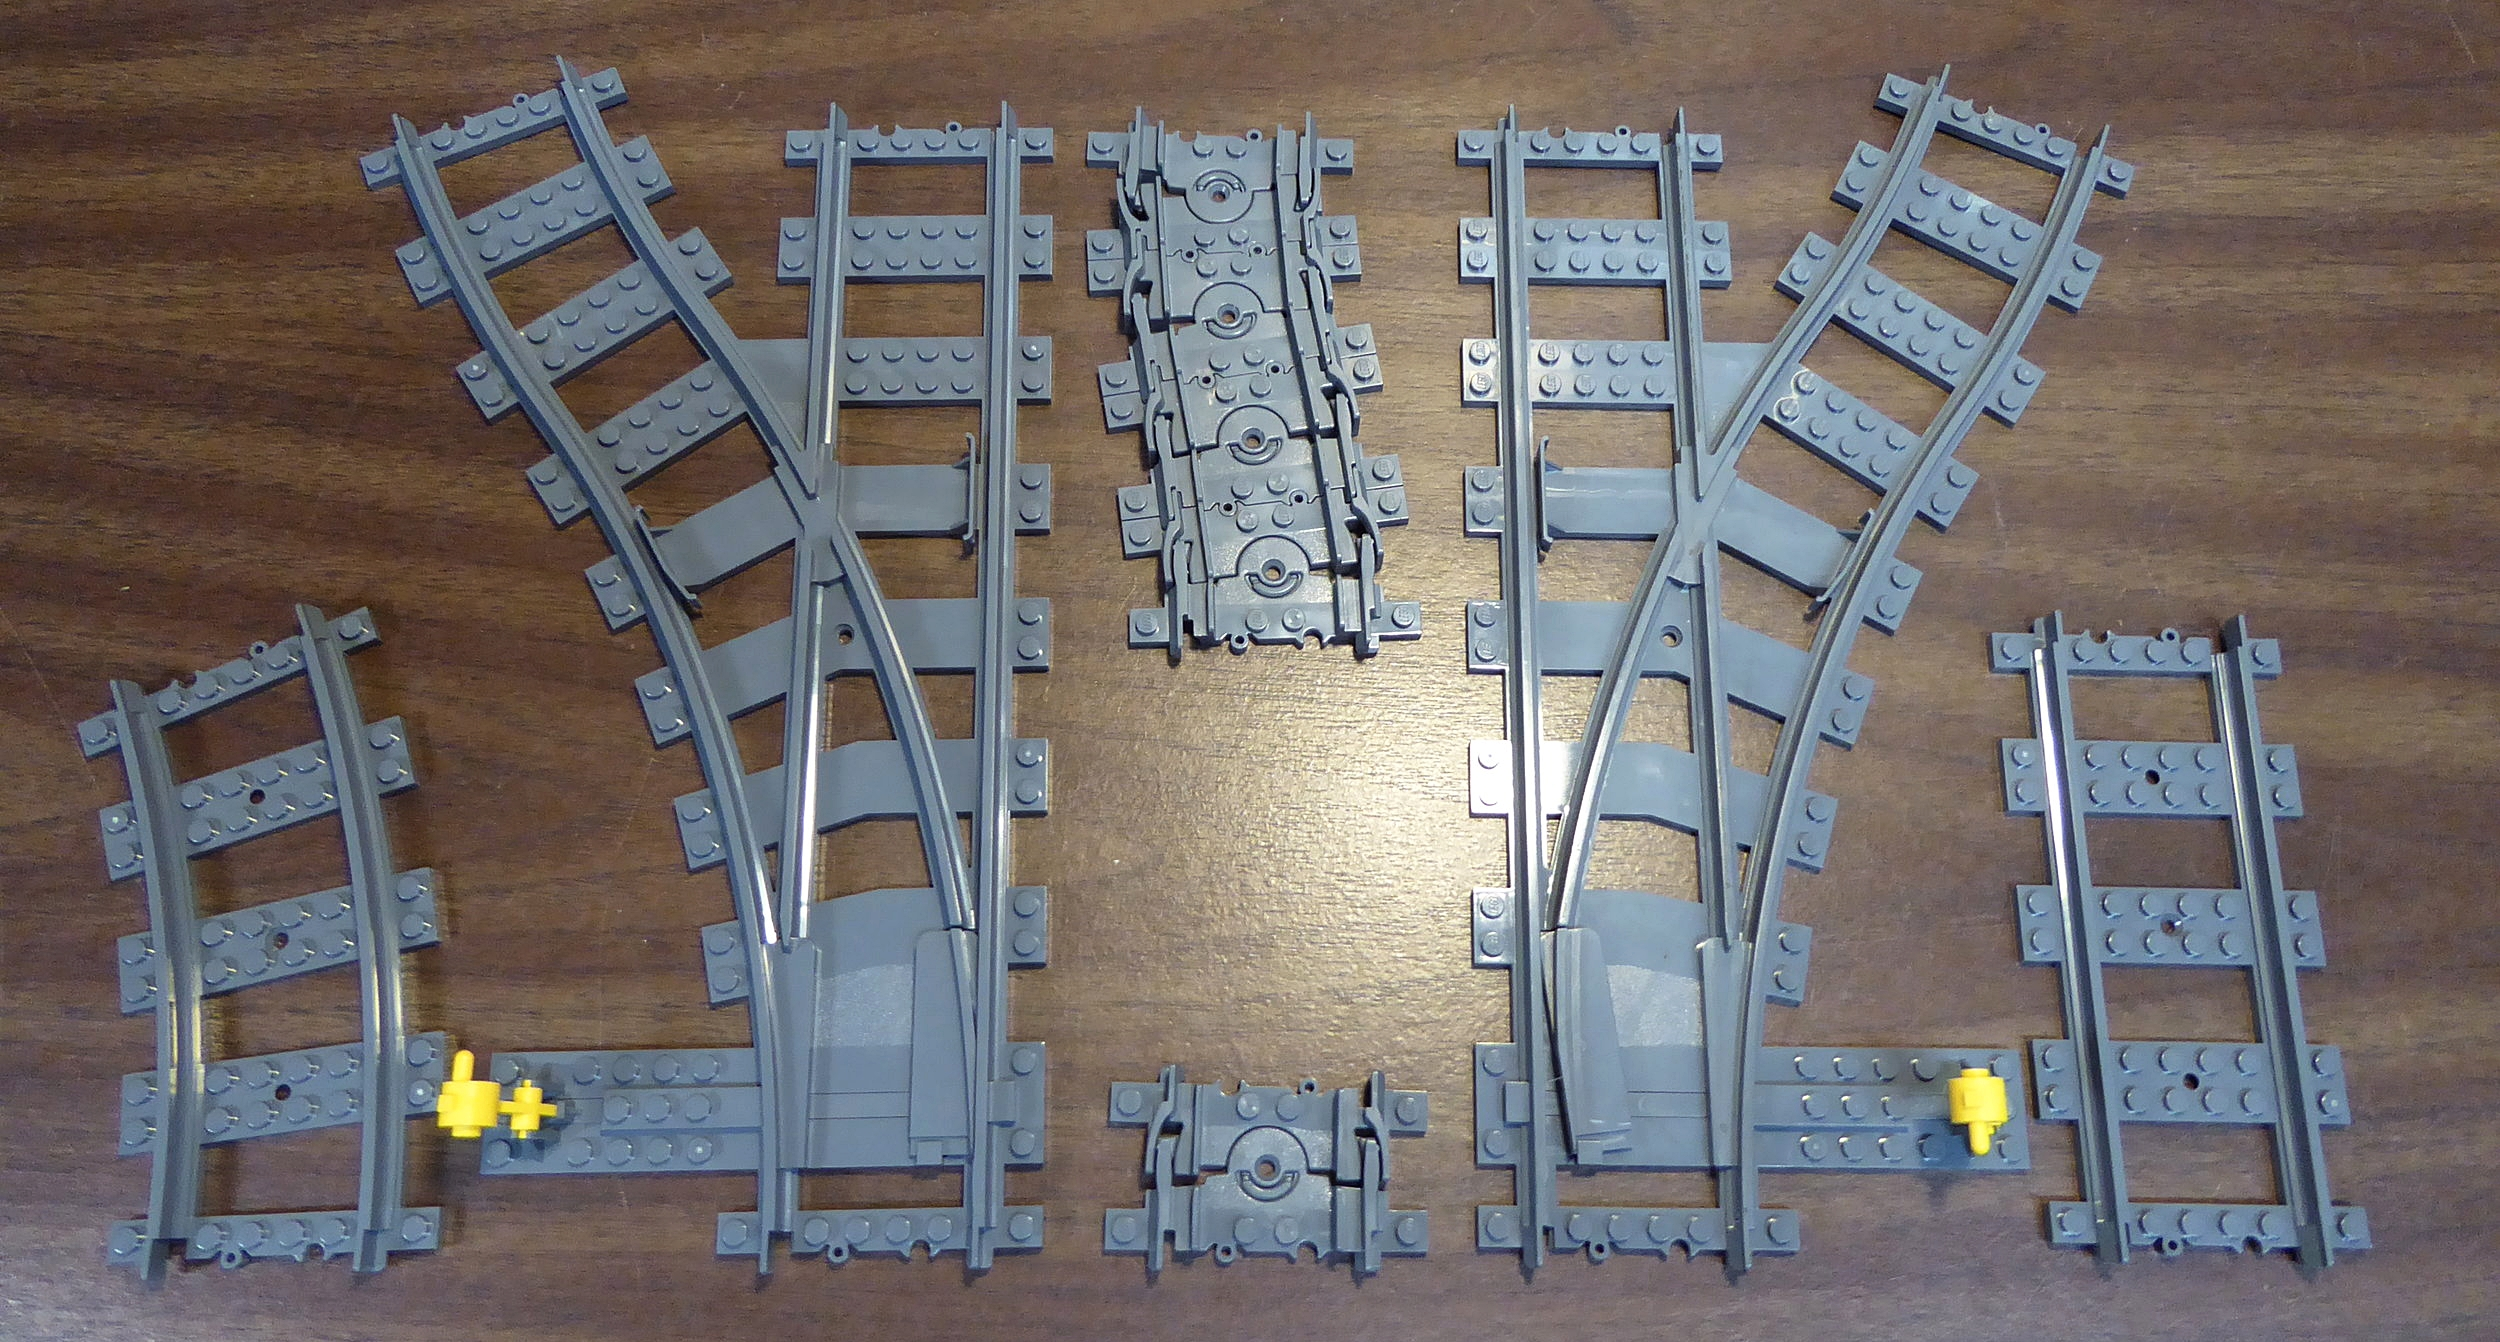 This photograph shows the whole range of official Lego train track parts. On the far left is a standard curve, and on the far right is a standard straight. The bottom center shows one piece of flexible track, and the top center shows four pieces of flexible track connected together, equaling the length of the curve and straight track, but with the ability to shift into unusual shapes. Also shown is one left-hand switch (set for the diverging route) and one right-hand switch (set for the straight route).